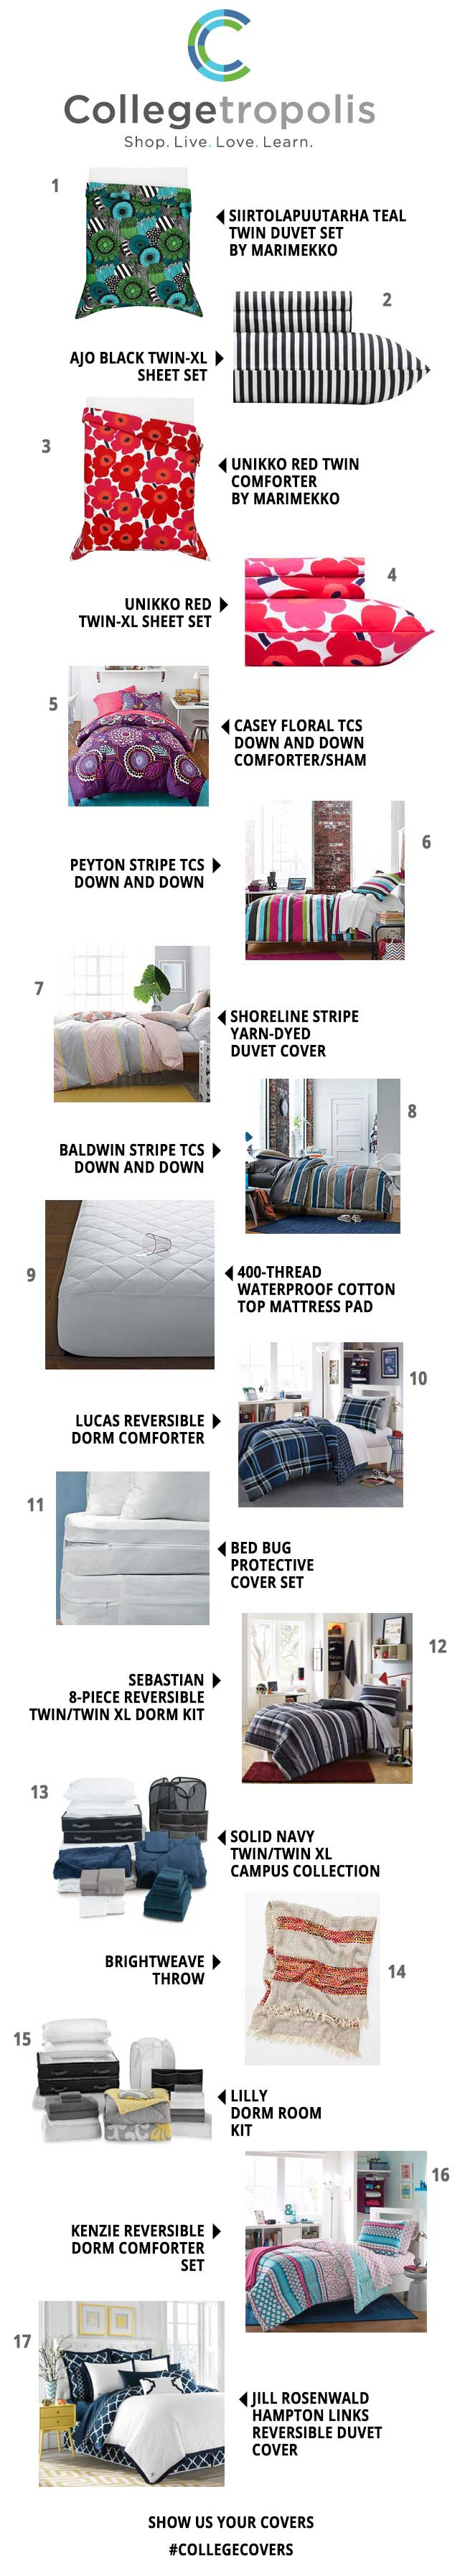 Must-have Dorm Room Bedding (Twin XL)